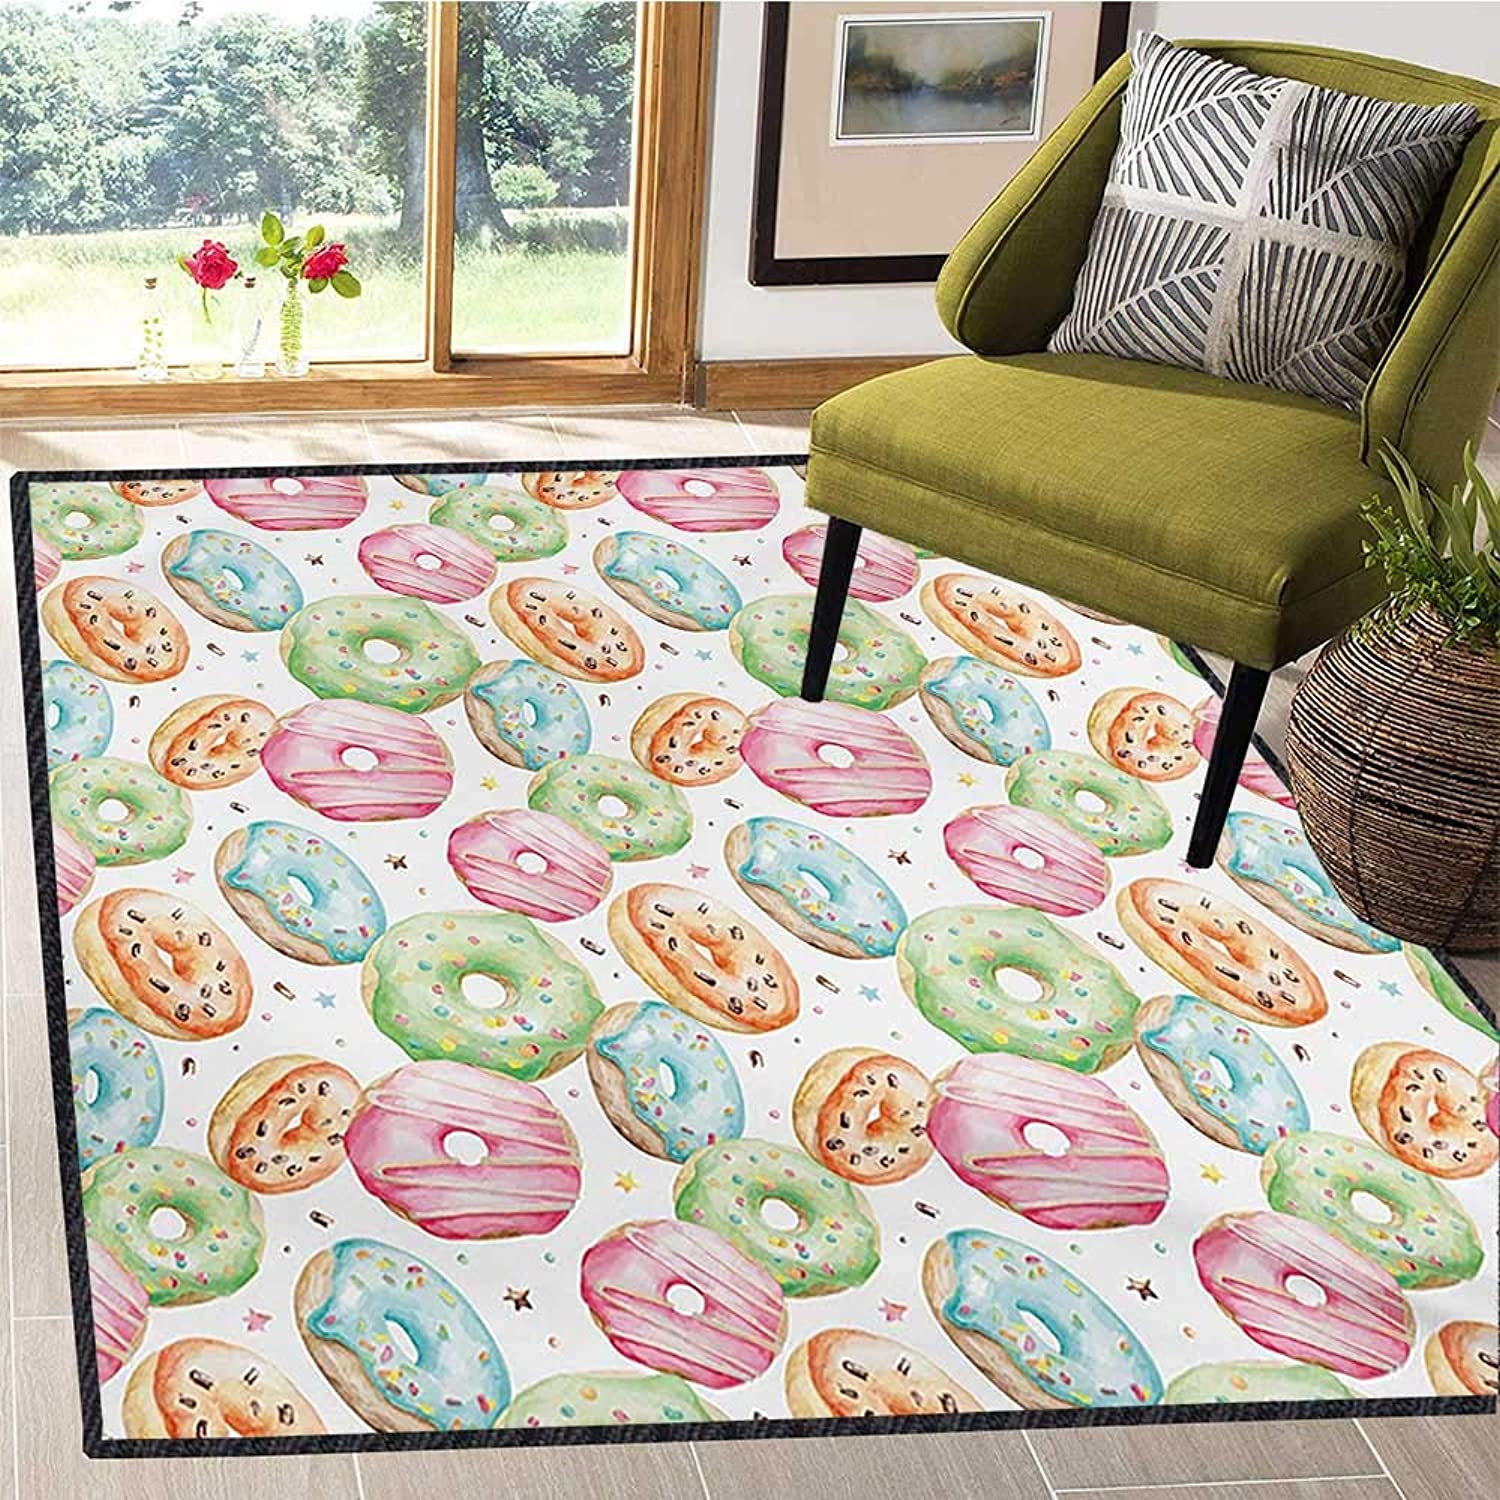 Watercolor, Door Mats for Inside, Sweet Delicious Donuts Pattern with Various Flavors Sprinkles Stars Background, Door Mats for Inside 6x7 Ft Multicolor